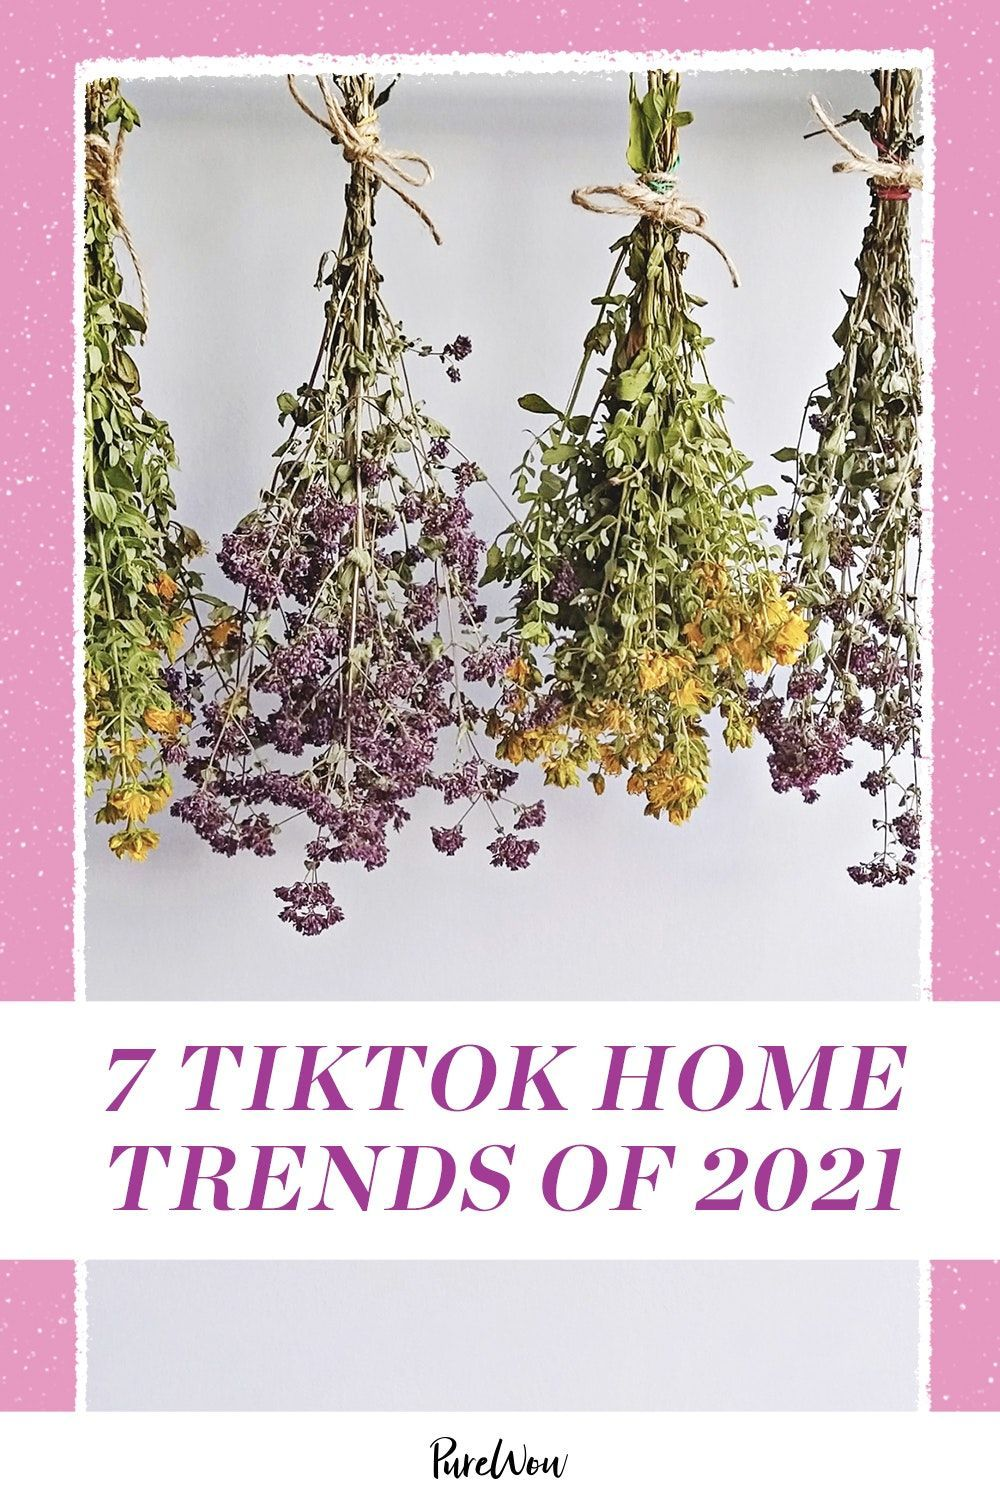 These Are The 7 Top Home Trends Of 2021 According To Tiktok In 2021 Home Trends Twisted Candles Trending